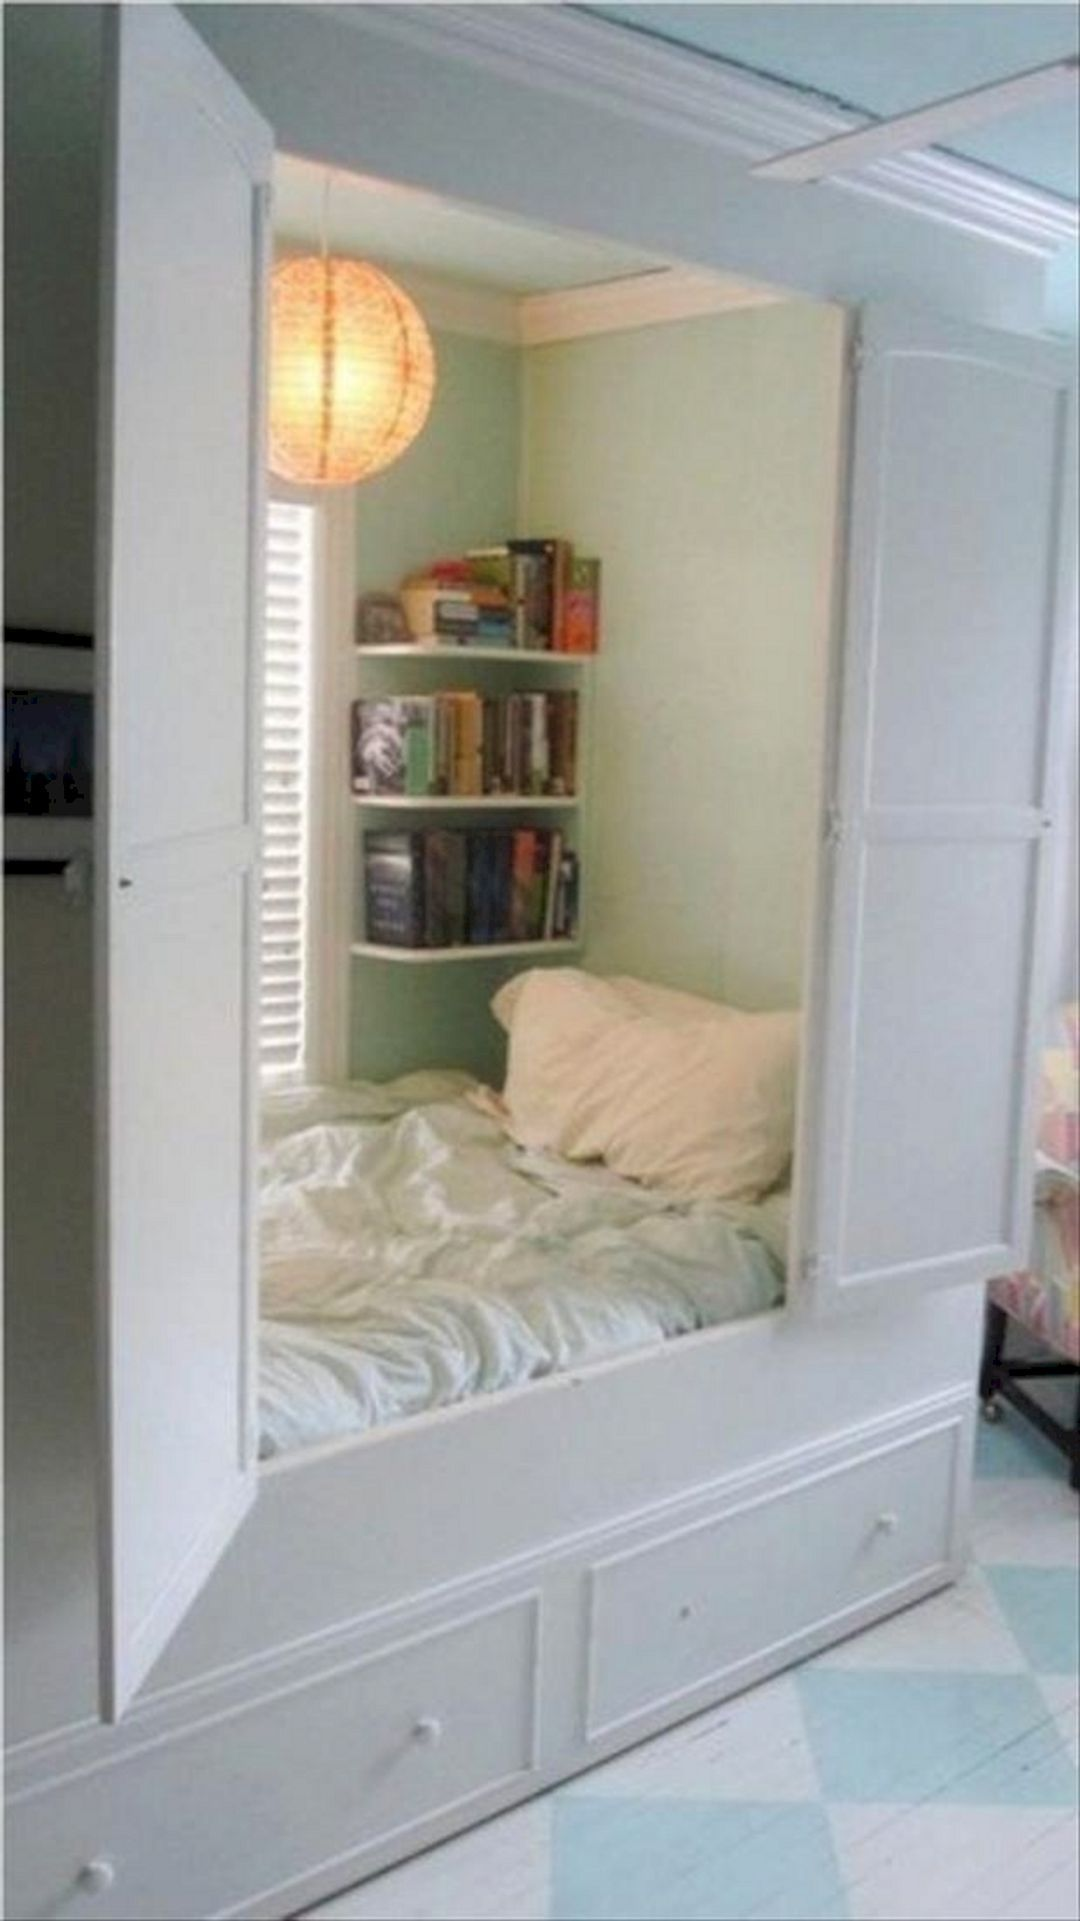 Design Your Own Room: Hidden Rooms You Will Want In Your Own House 36 (Hidden